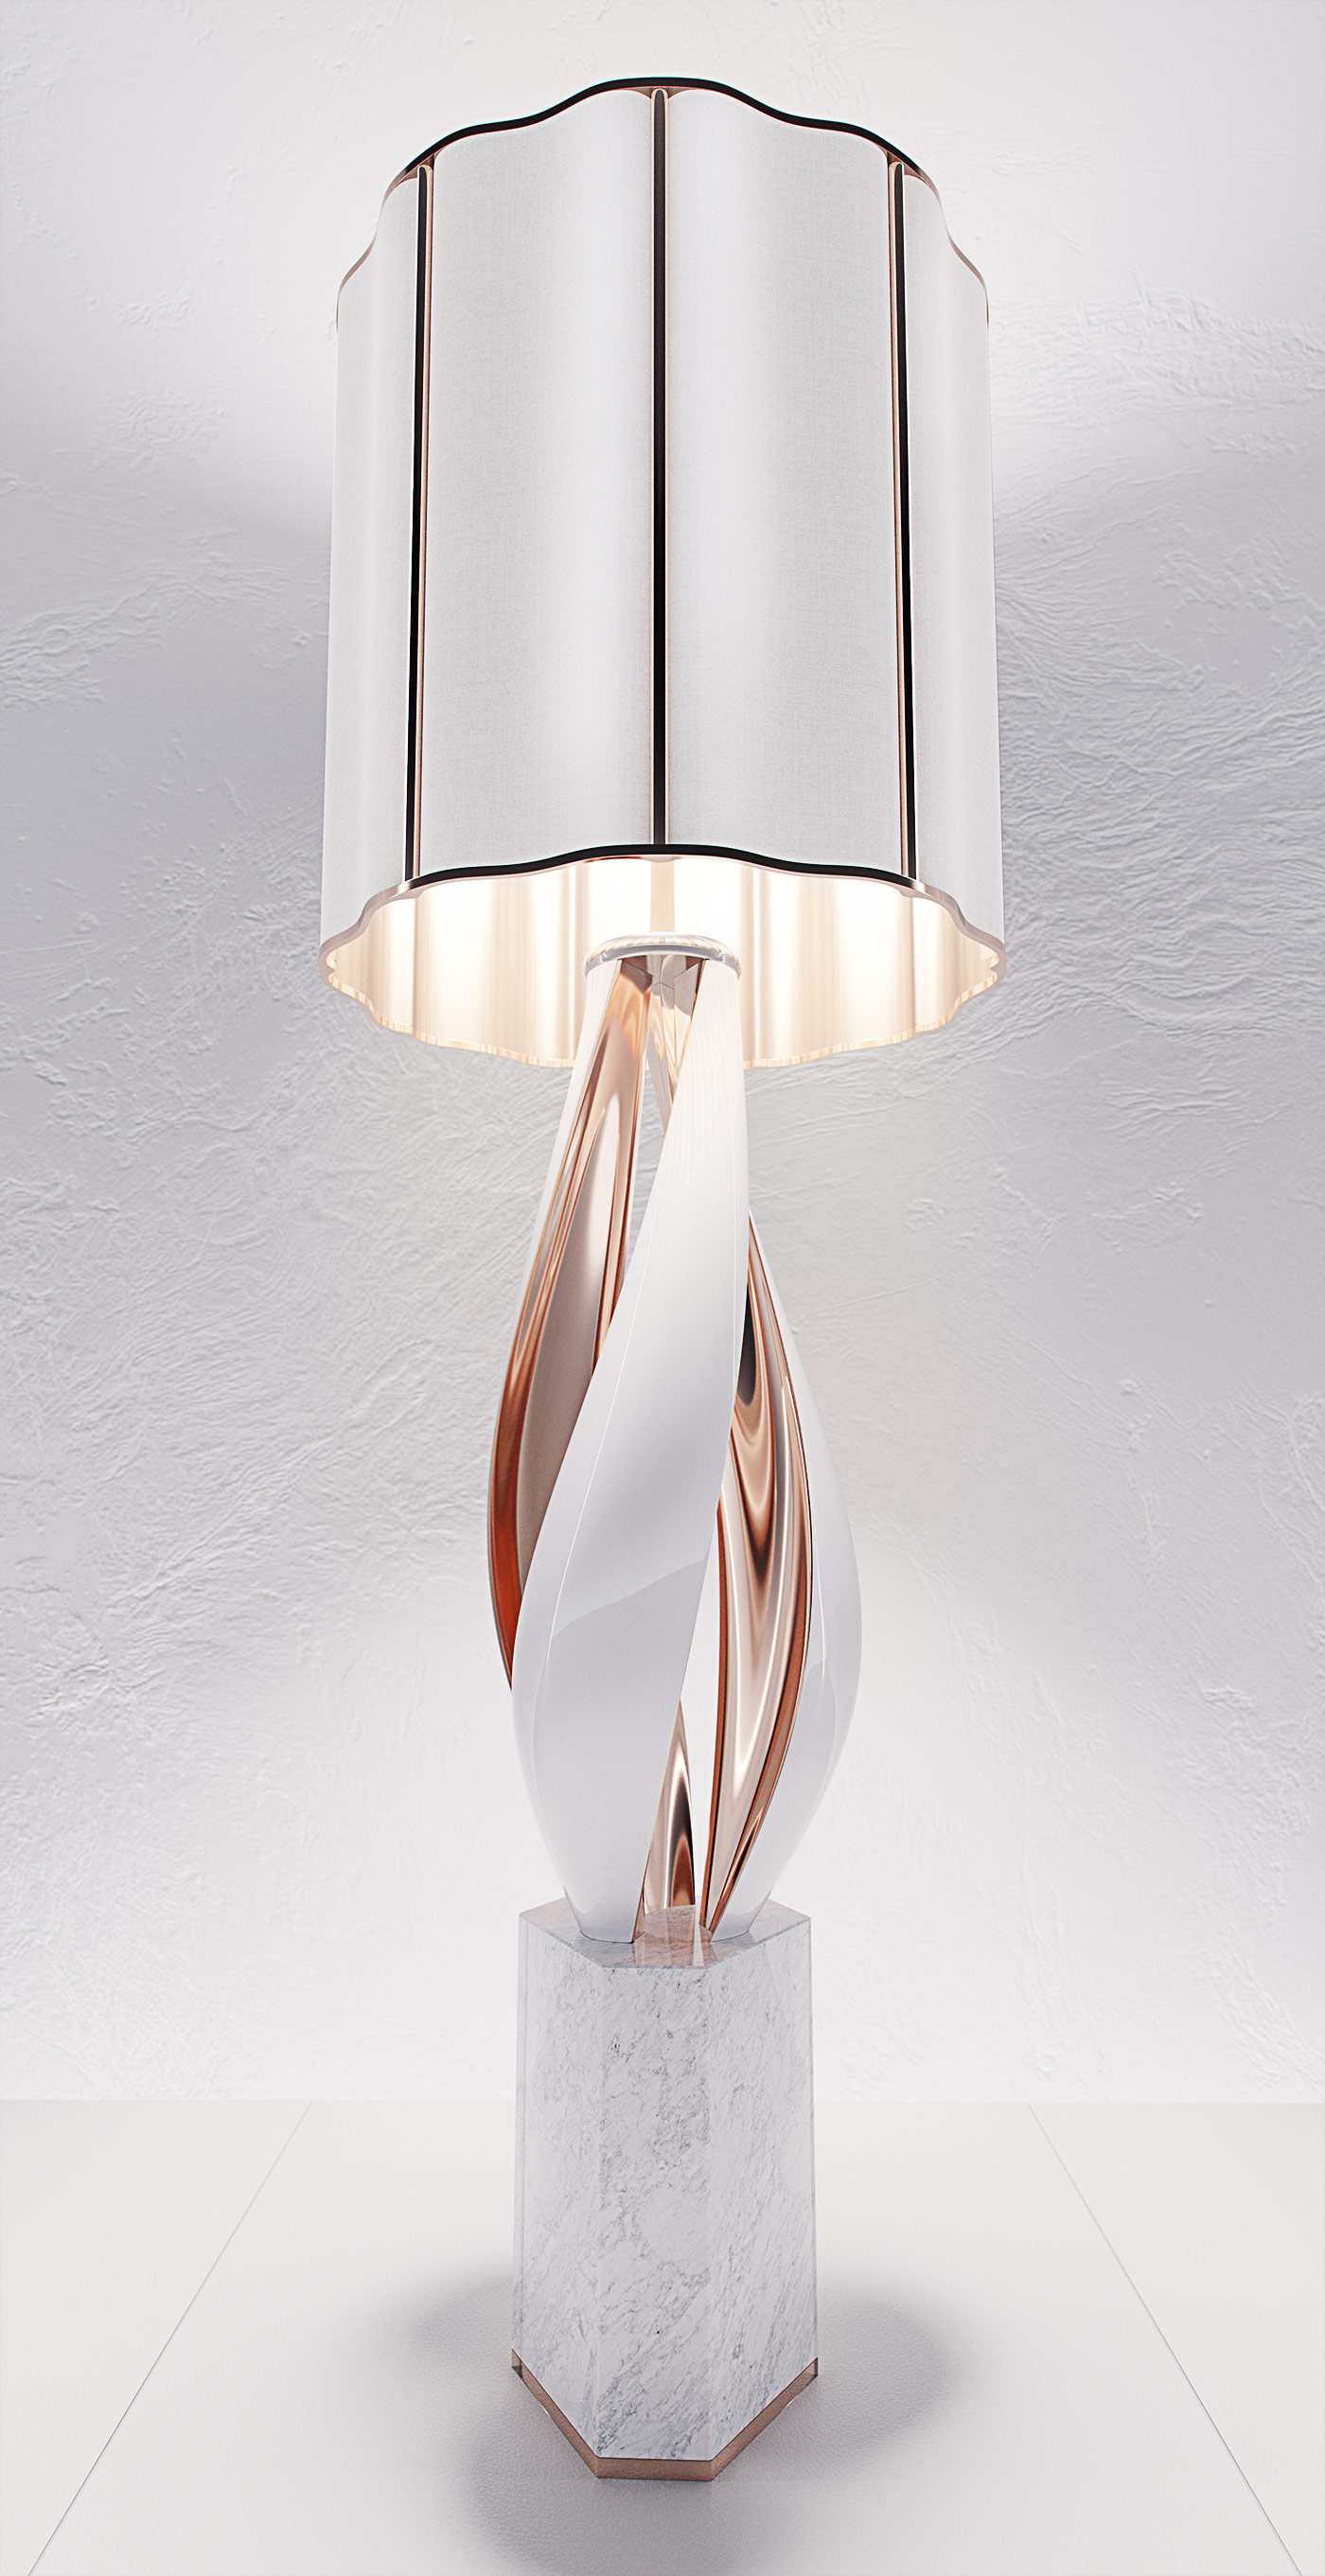 luxury lighting concept, Nightshade Lamp 6